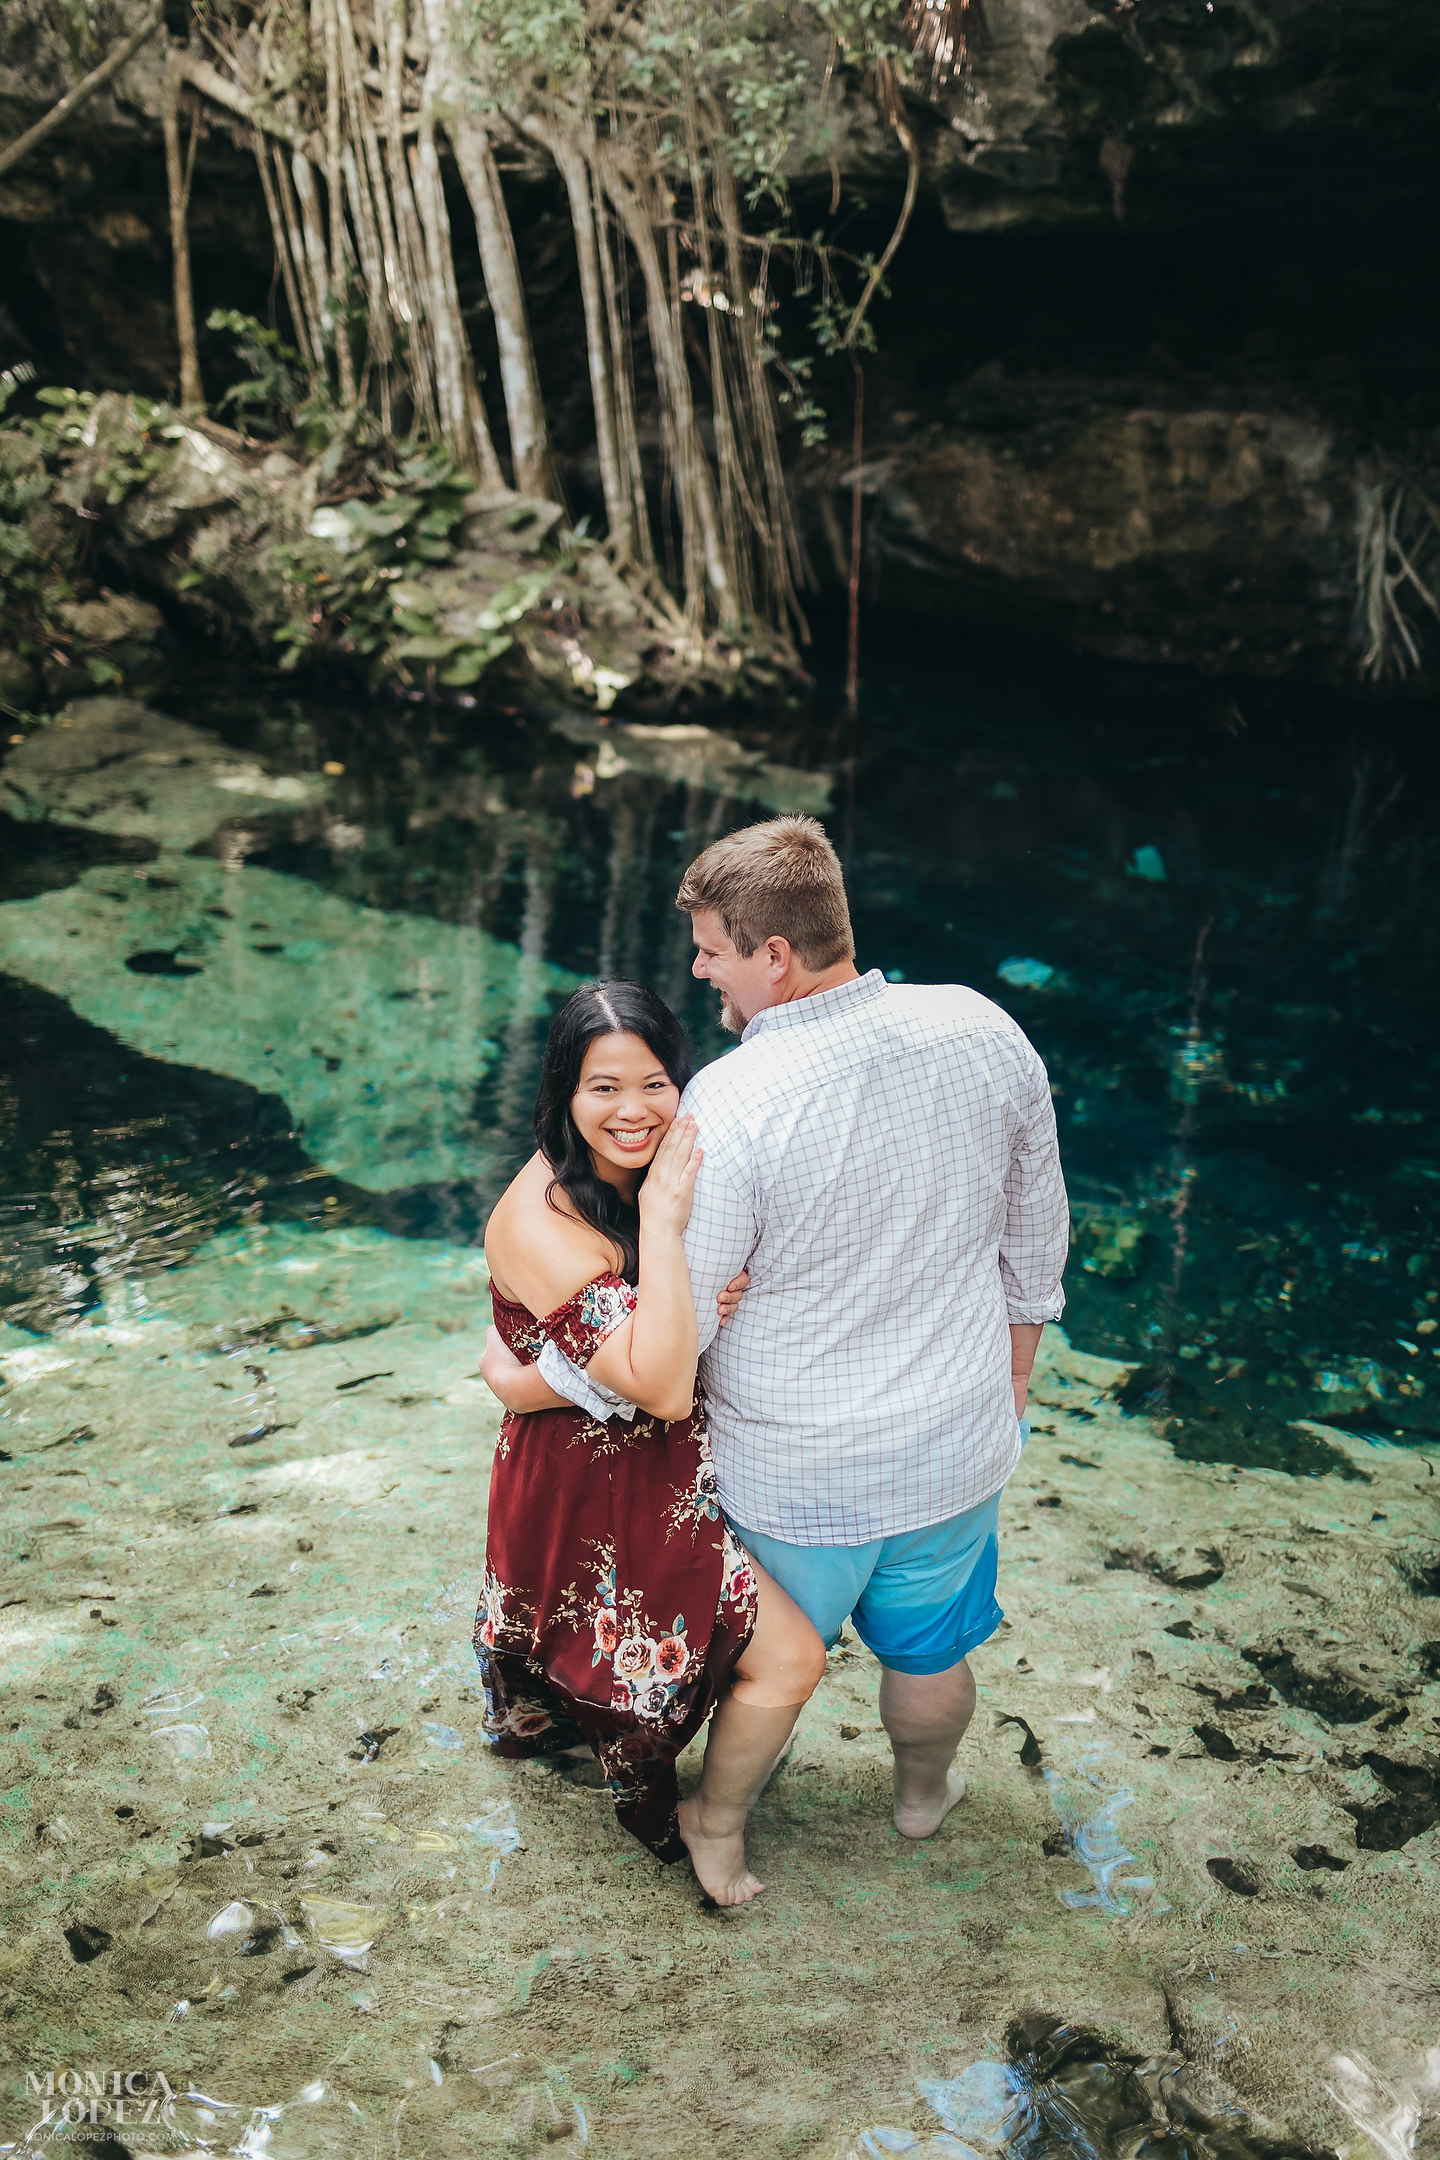 Romantic Cenote Portraits in the mayan jungle by Monica Lopez Photography